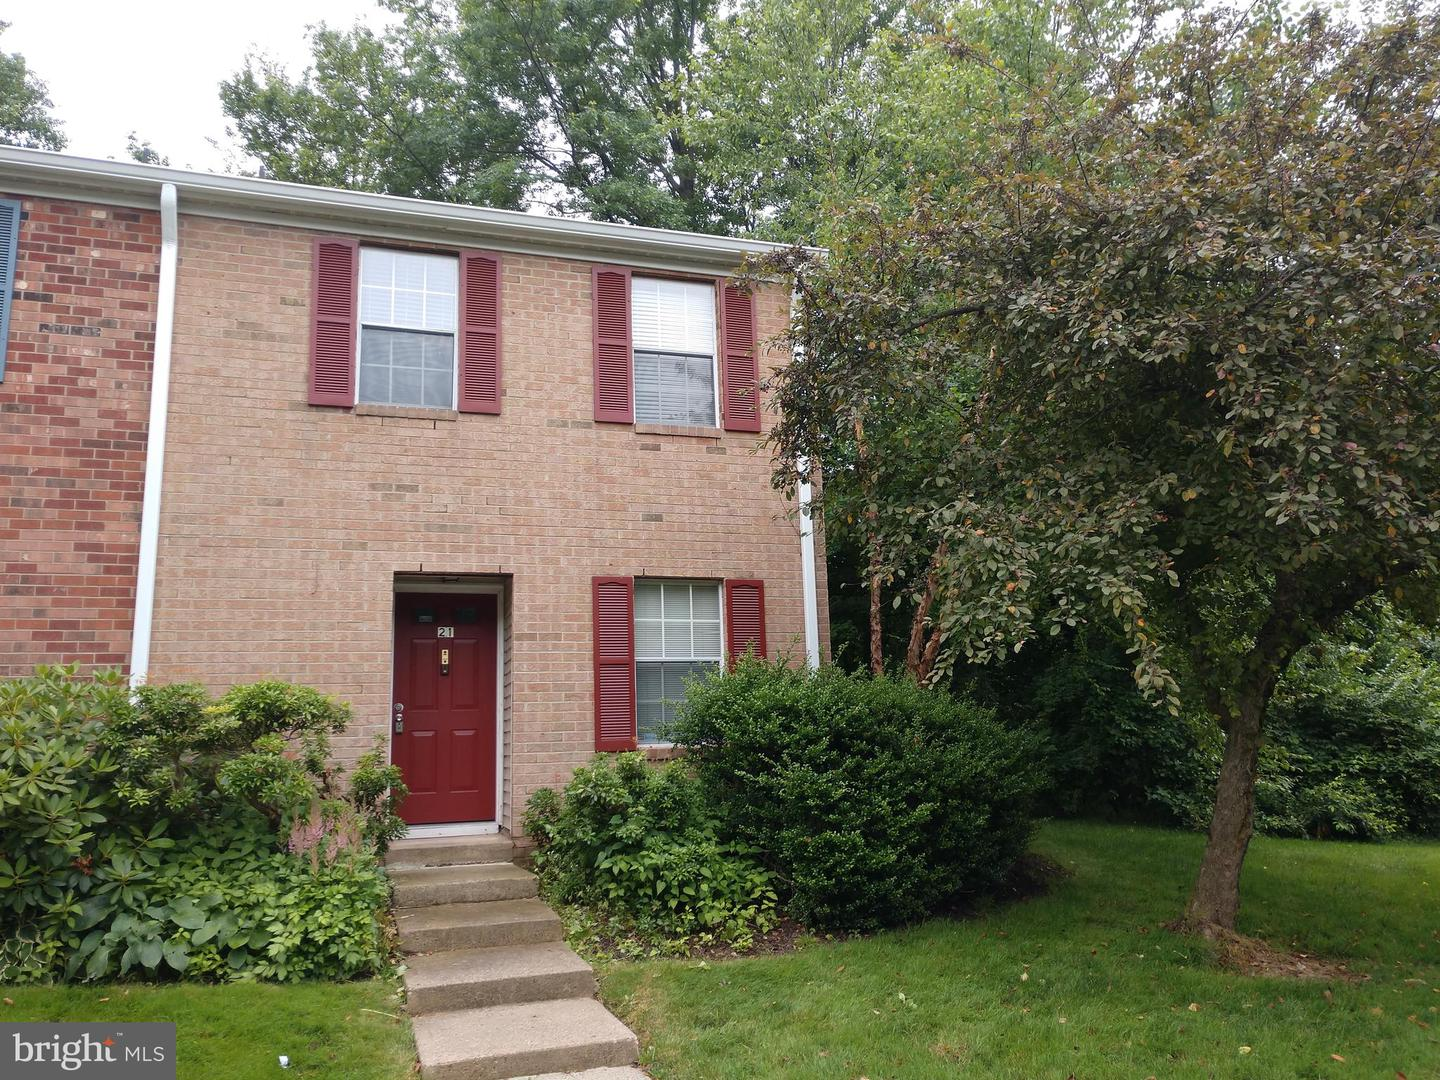 21 SYCAMORE CT, LAWRENCEVILLE, NJ 08648